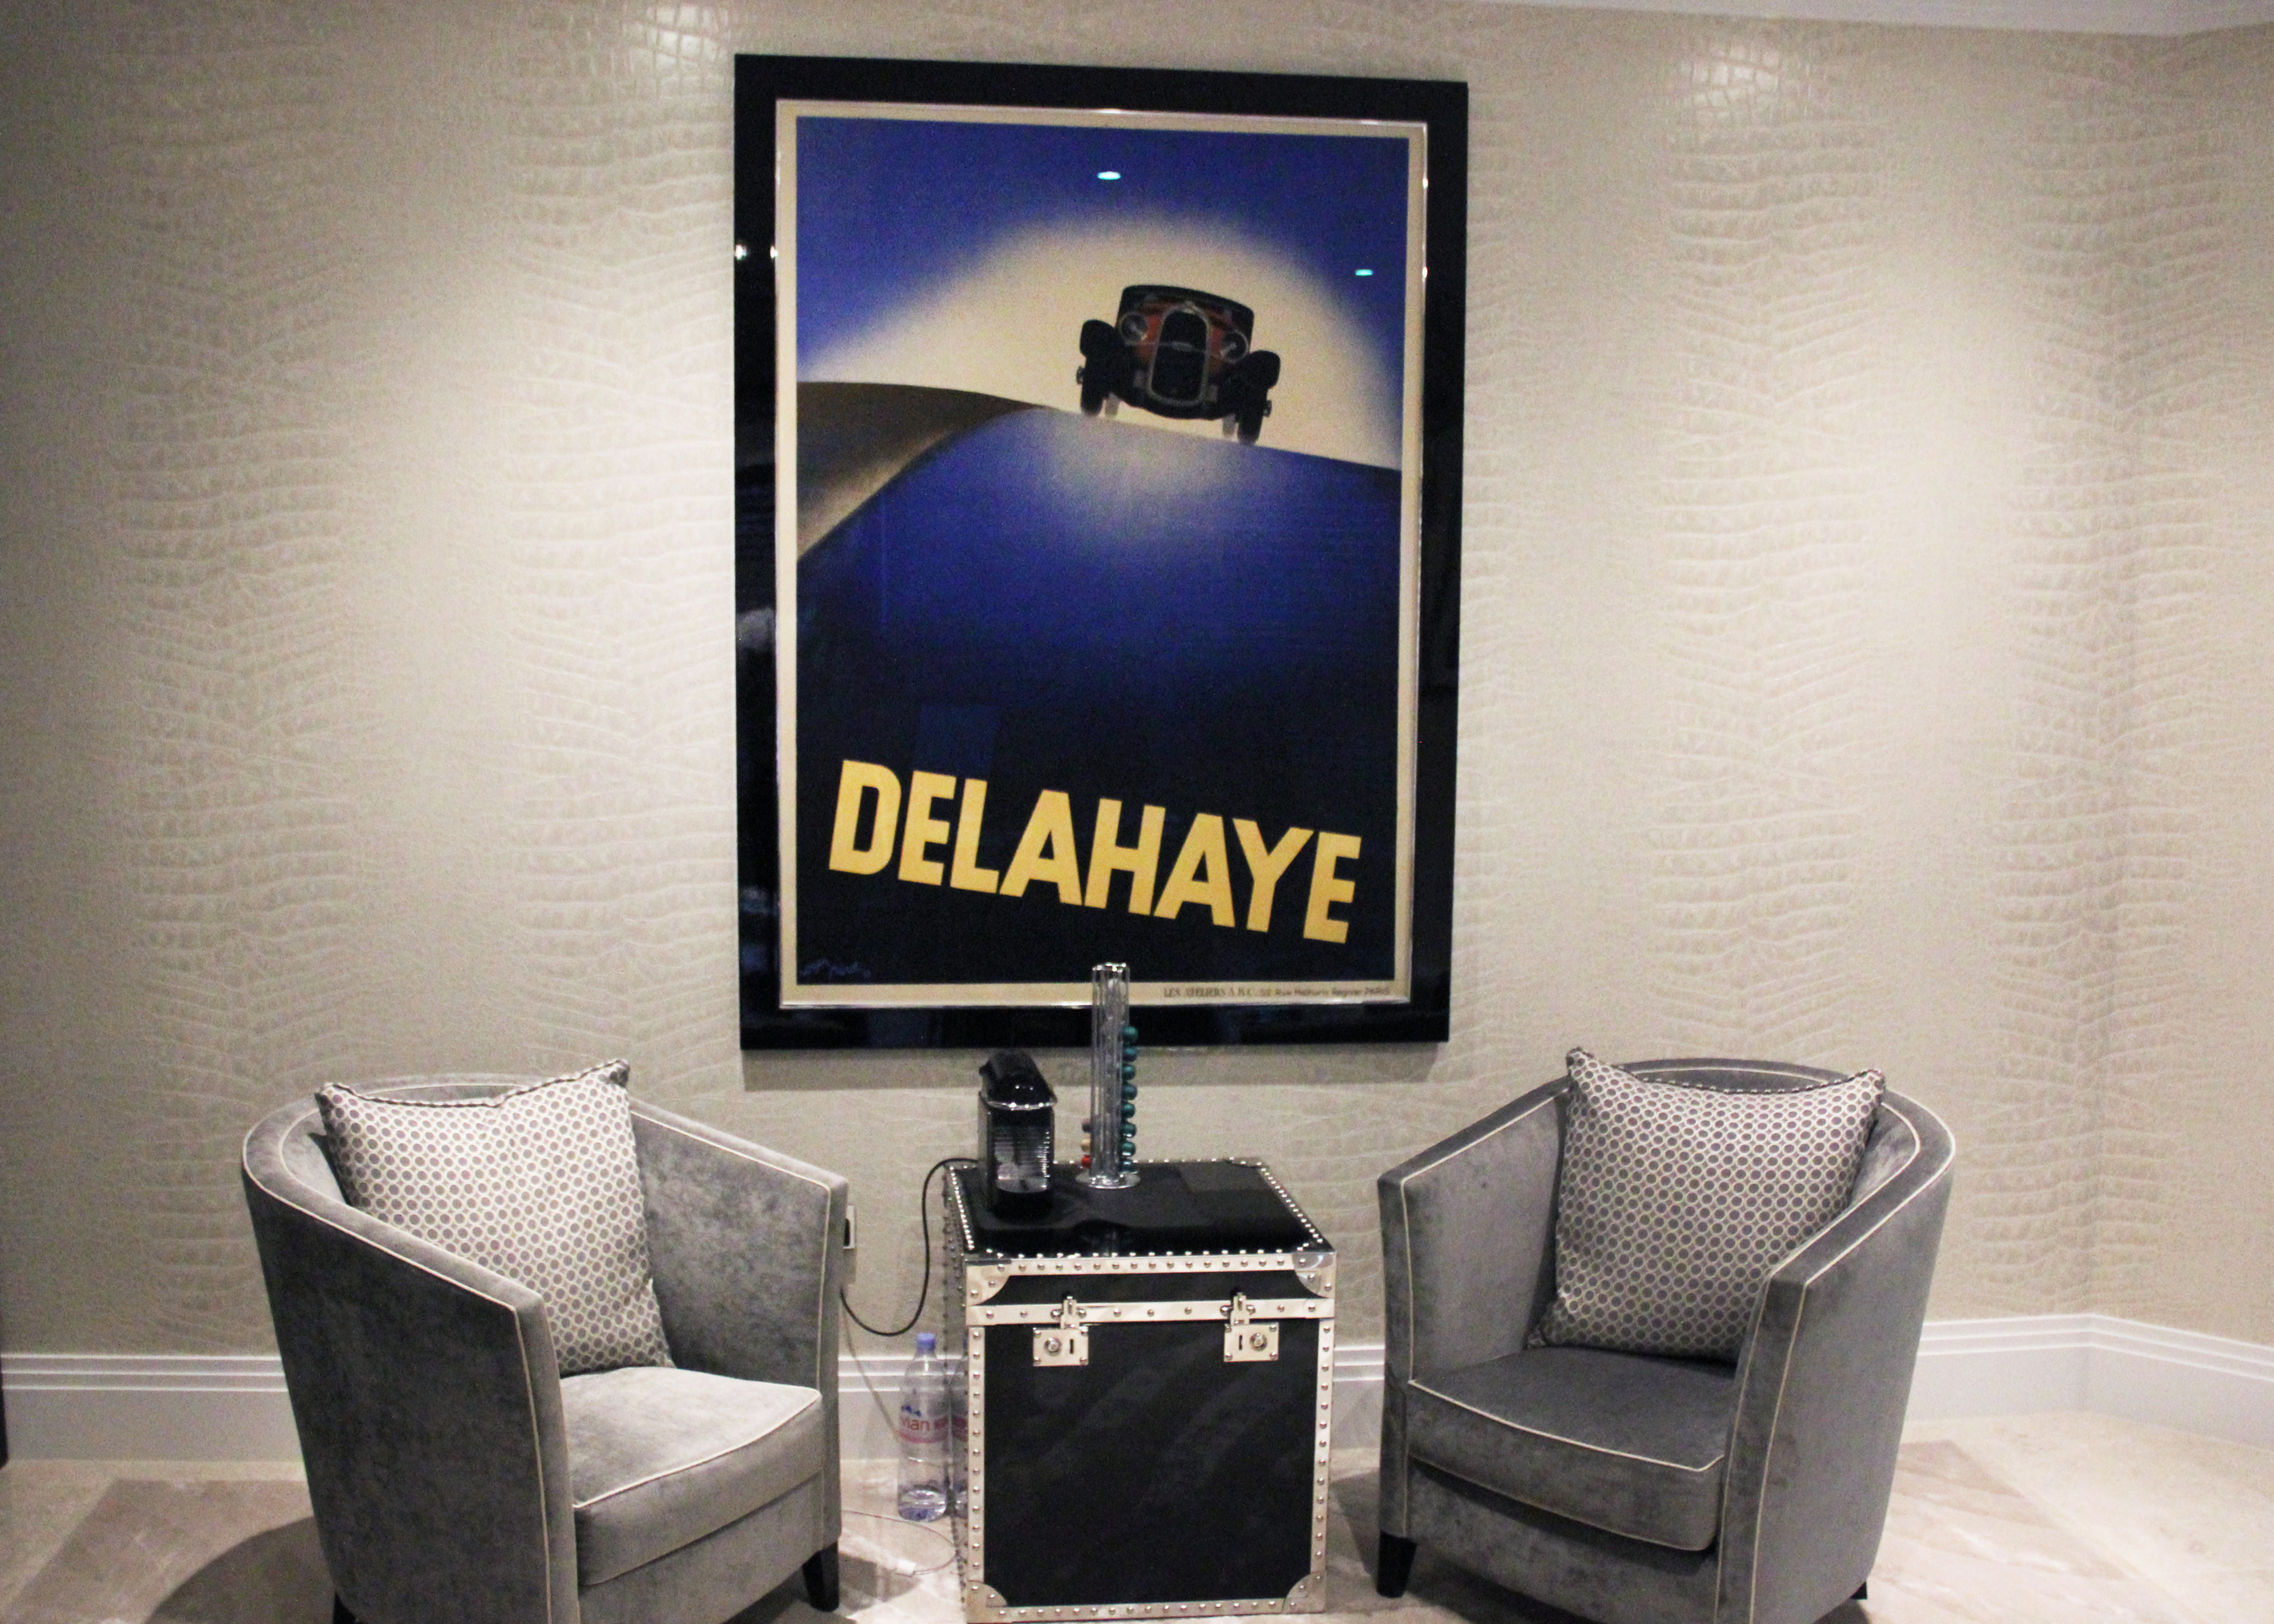 framed art deco car poster on wall behind two armchairs; blue, grey, black